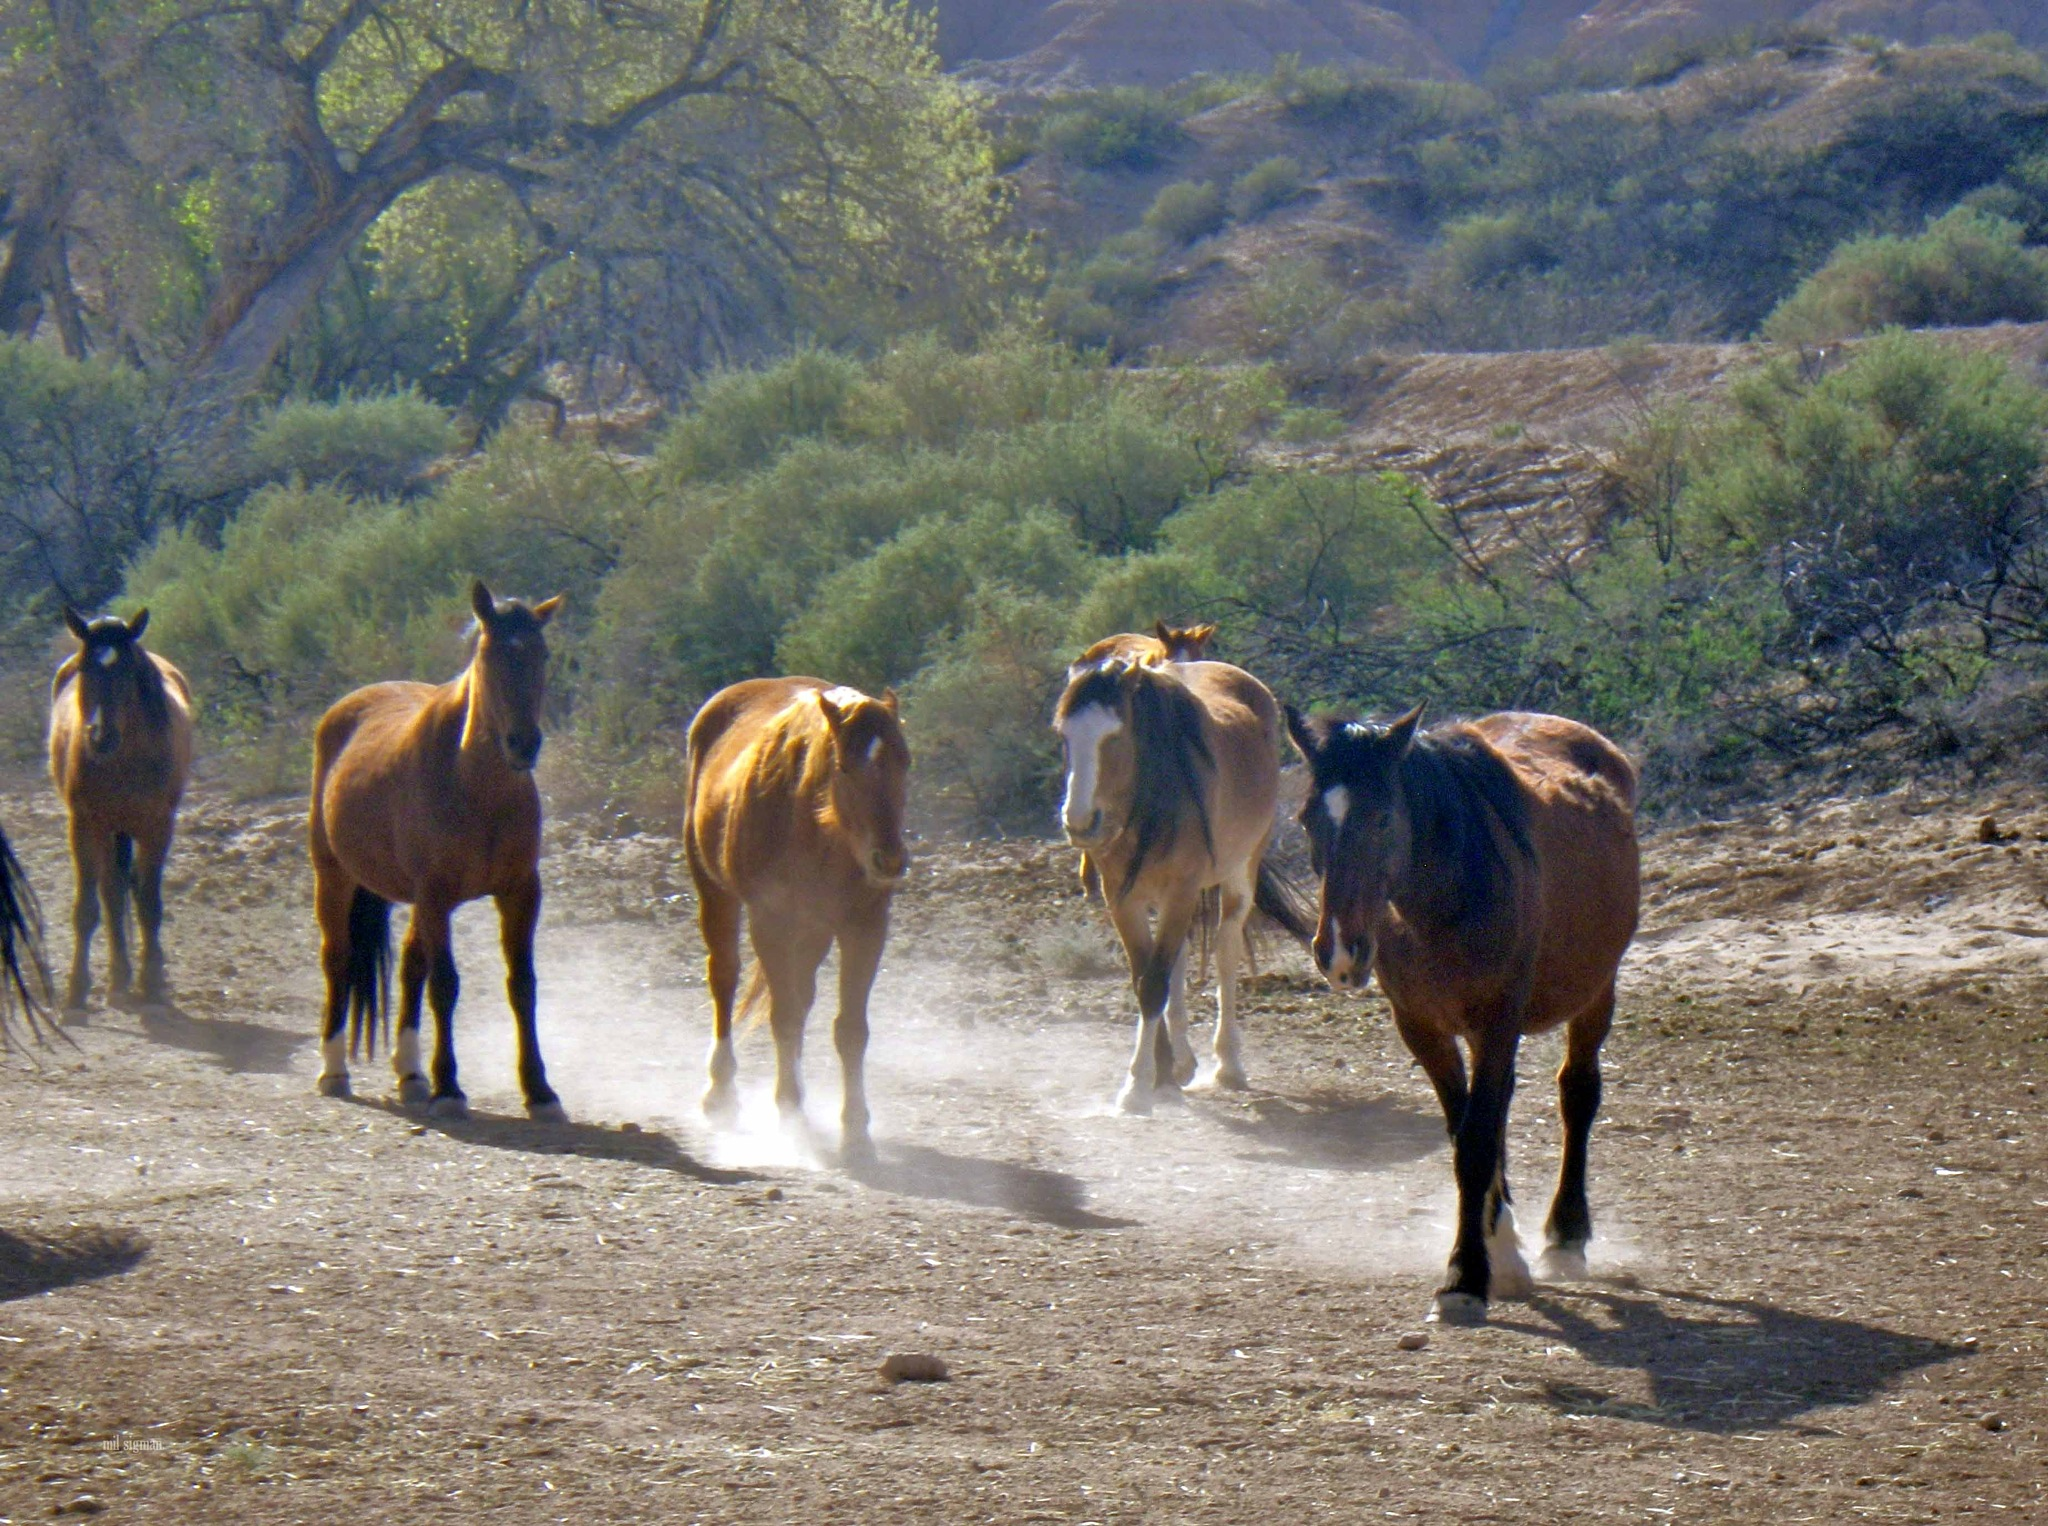 Horses stirring up dust  by milled98